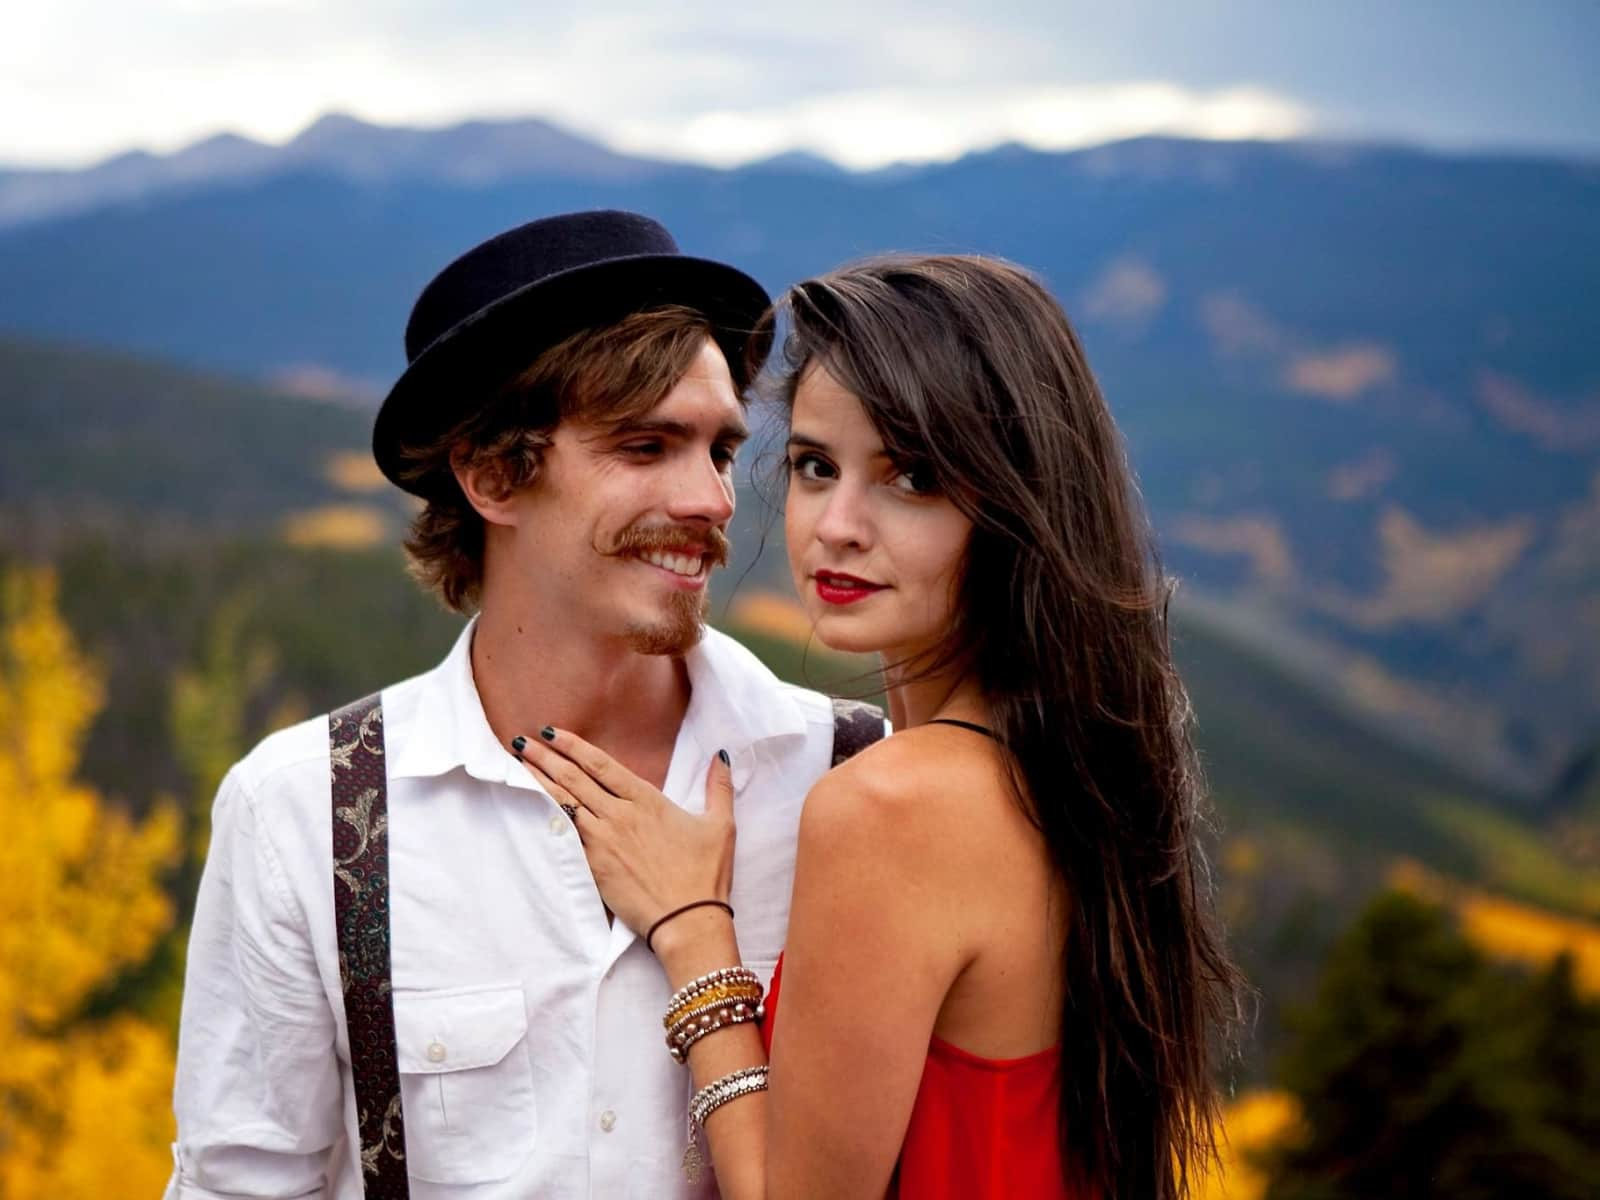 Jordan & Alejandra from Denver, Colorado, United States